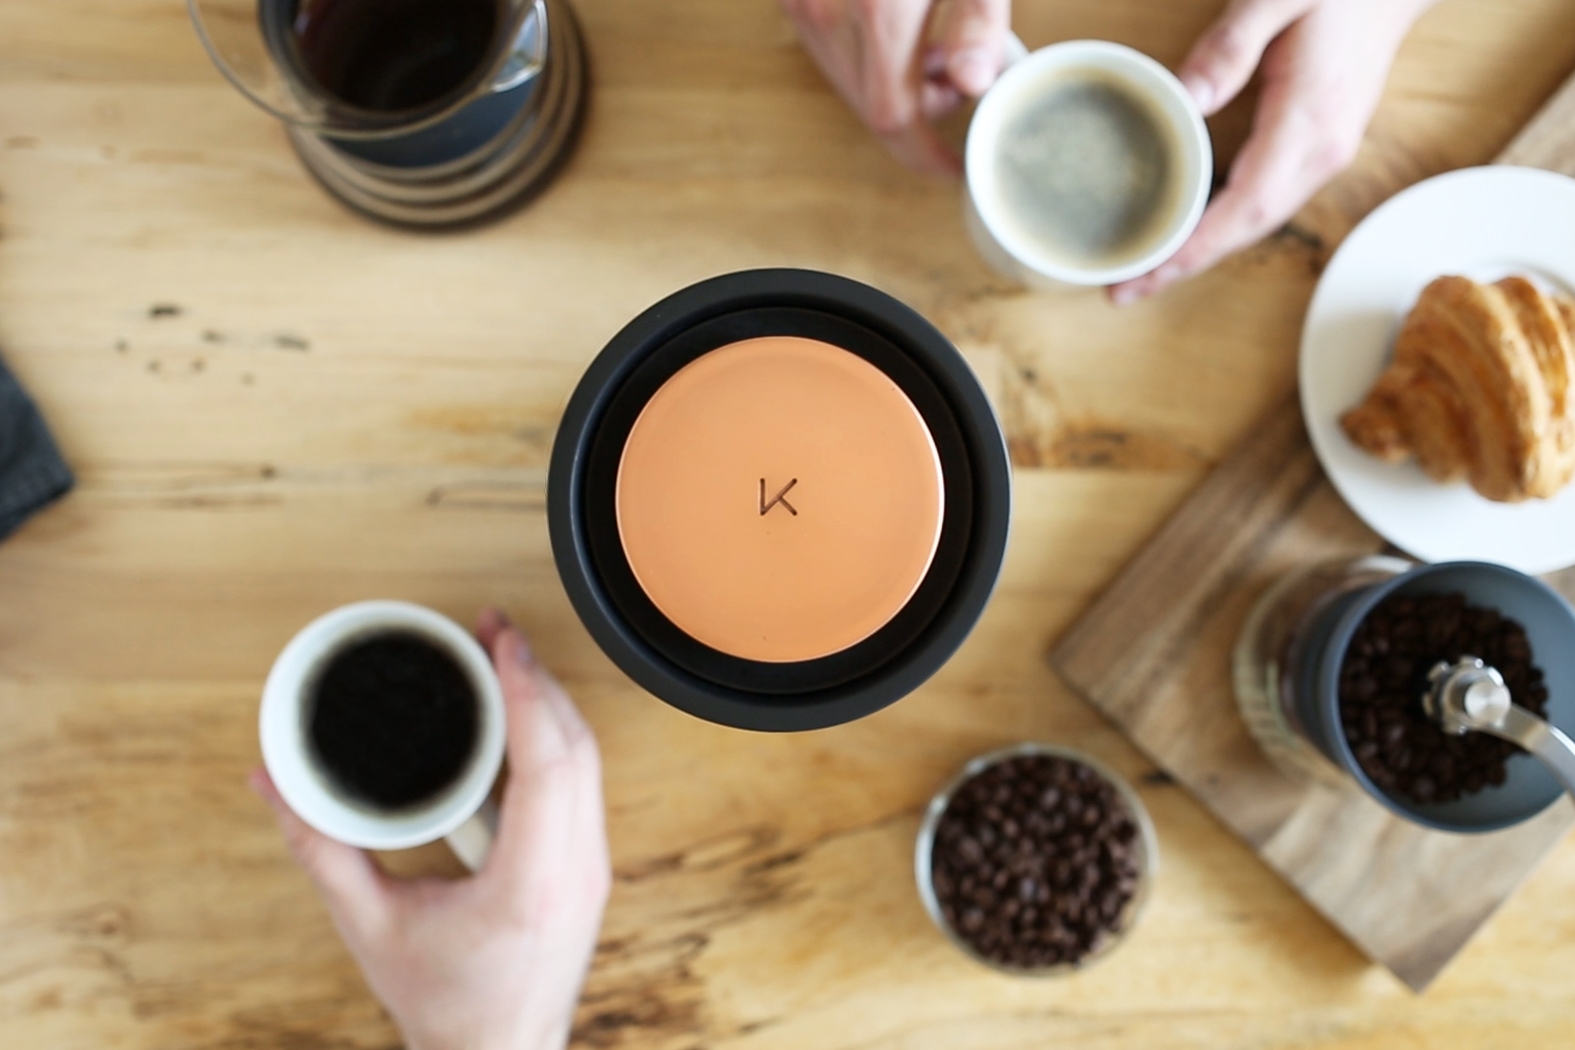 Experience Freshness - Roast on-demand for the best cup of coffee you've ever tasted, with bright vibrant flavors.Kelvin is the best way to guarantee your coffee is always fresh. Its efficient roast cycle delivers roasted coffee in less than 10 minutes, allowing you to discover the incredible taste of freshly roasted coffee, whenever you want it.